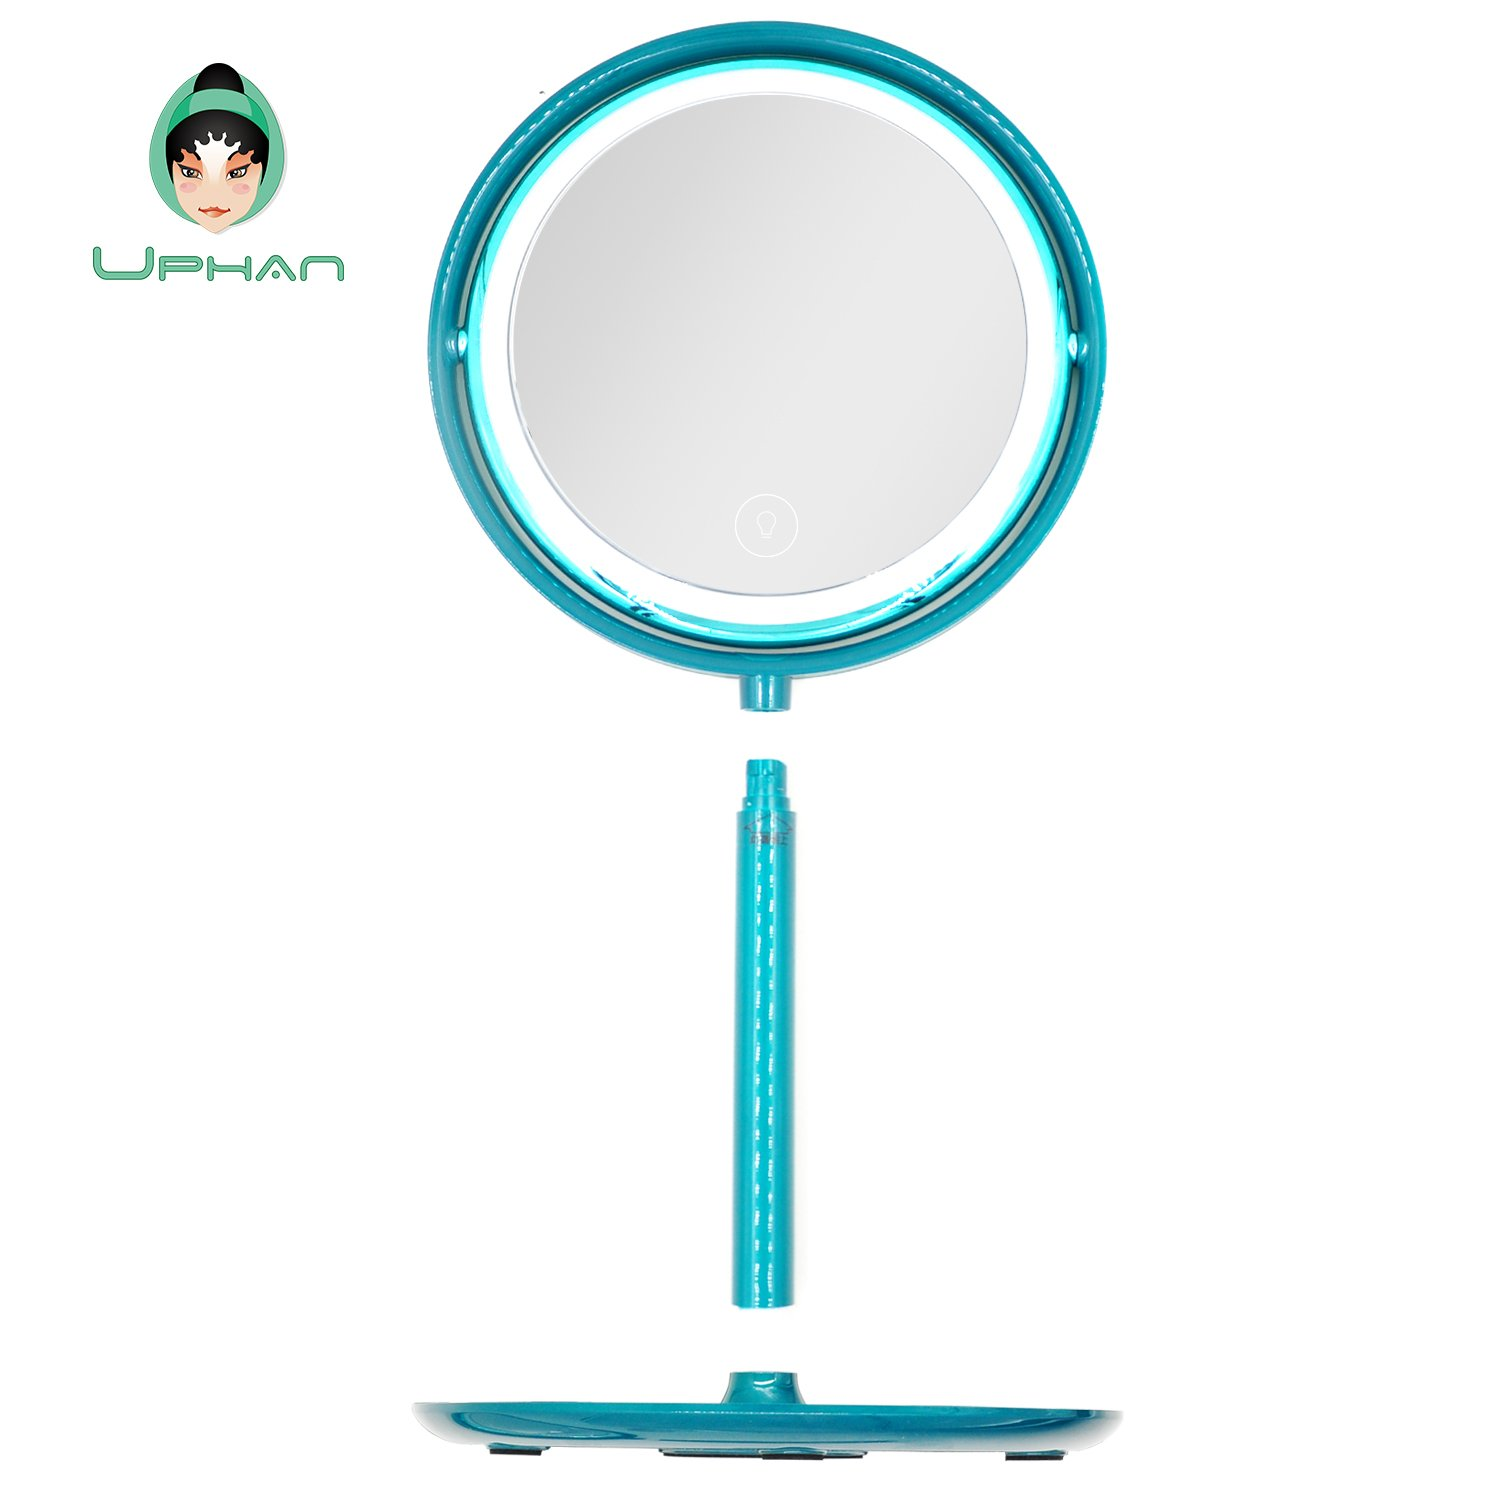 UPHAN U7 Surgical Grade Lighted Makeup Mirrors, 7 inch Luxury Dual Light Color Dimming Light with 5X Detail Mirror, Malachite green ¡­ (Surgical Grade) by UPHAN (Image #7)